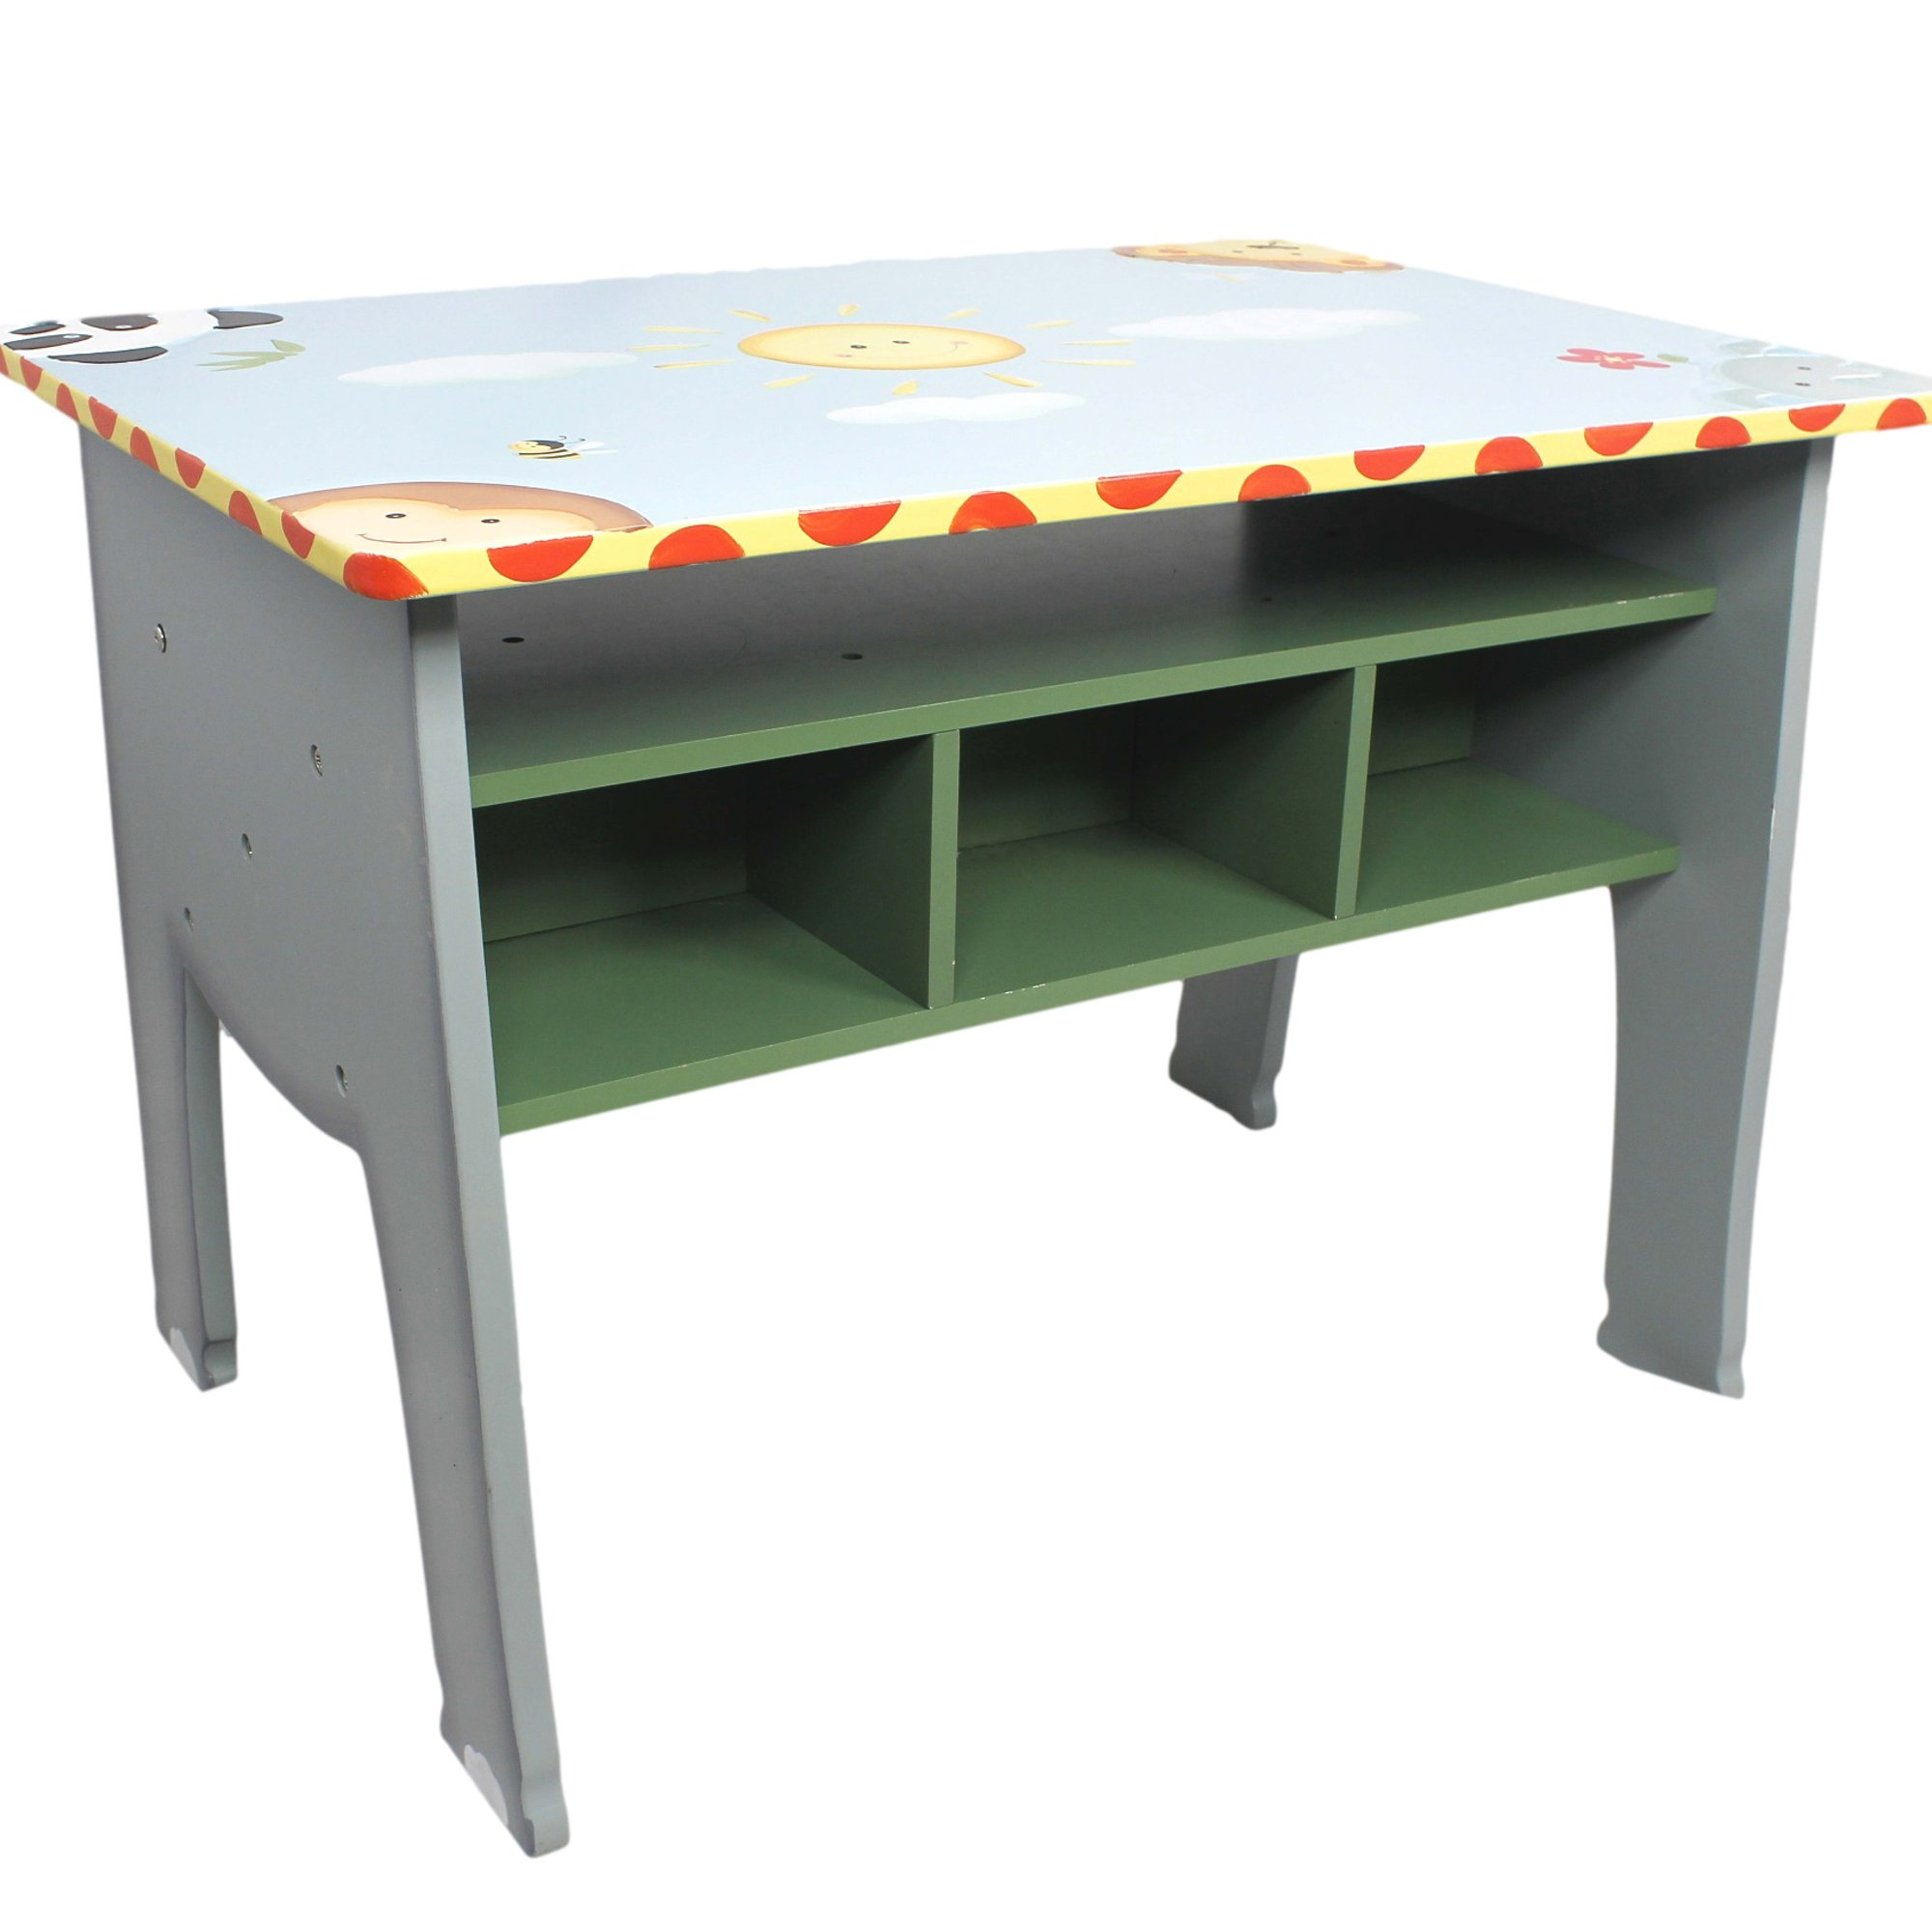 Fantasy Fields - Sunny Safari Animals Thematic Kids Wooden Desk Imagination Inspiring Hand Crafted & Hand Painted Details Non-Toxic, Lead Free Water-based Paint